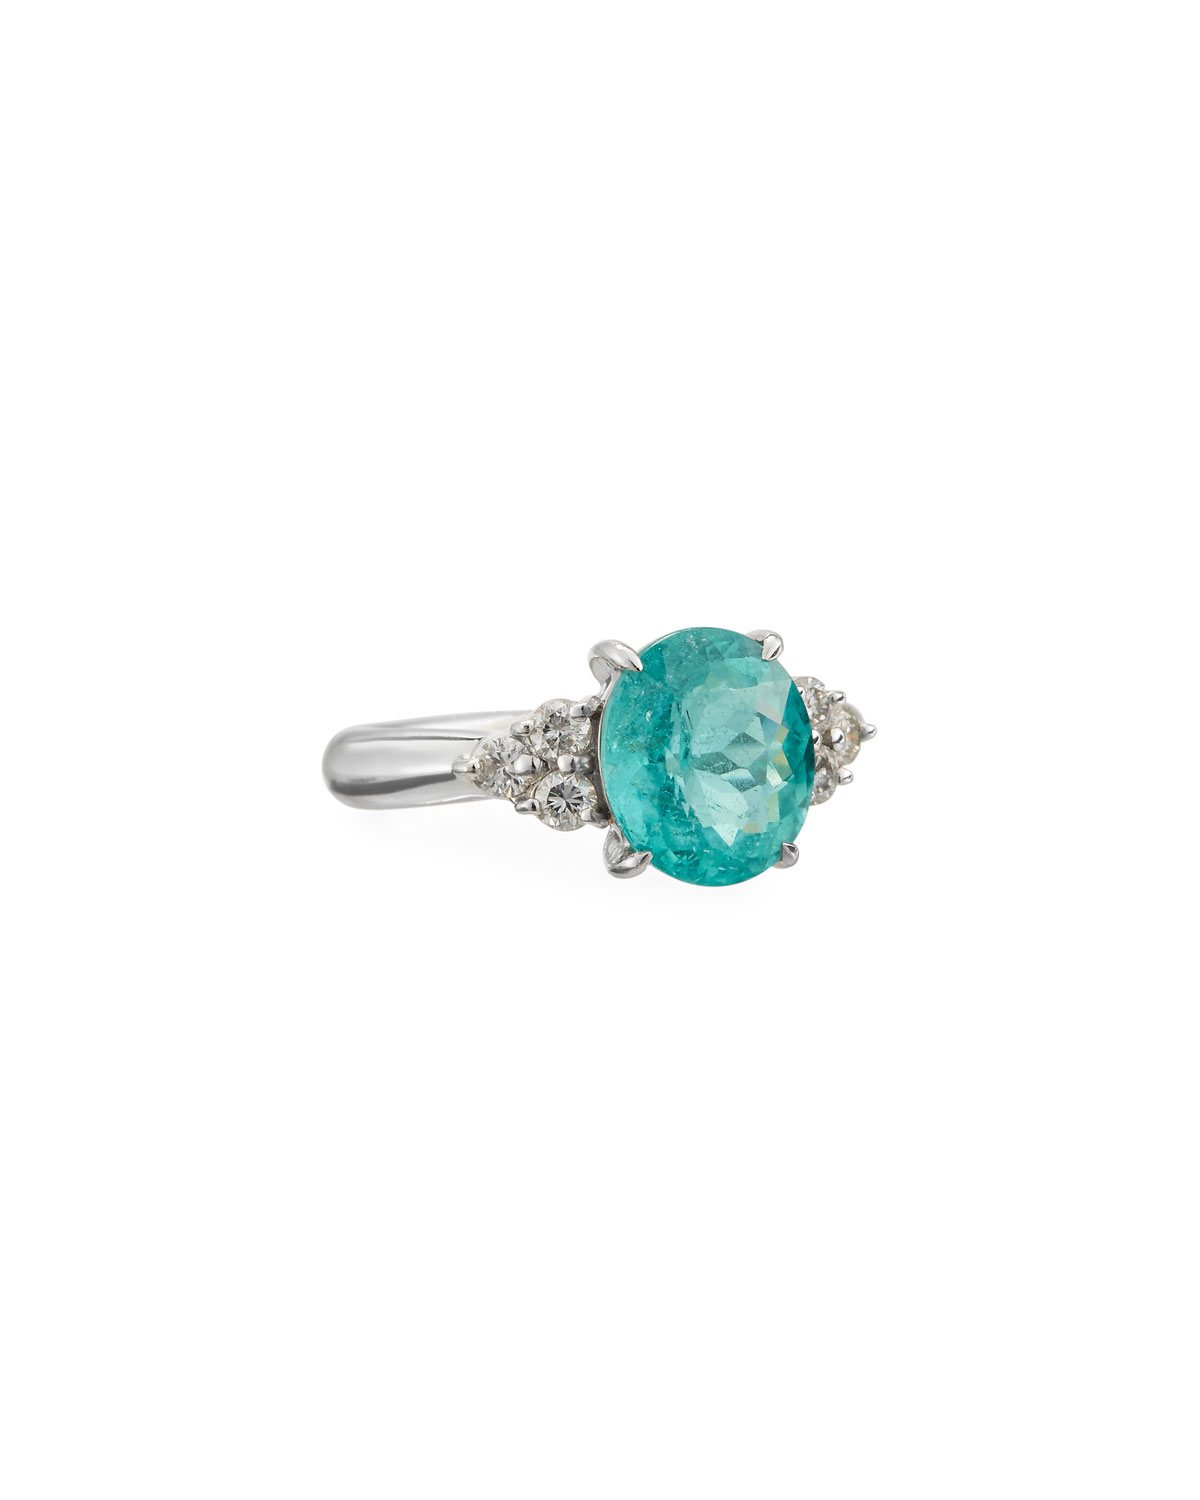 Alexander Laut 18K White Gold Pear-Cut Paraiba Ring with Diamonds, Size 7.25